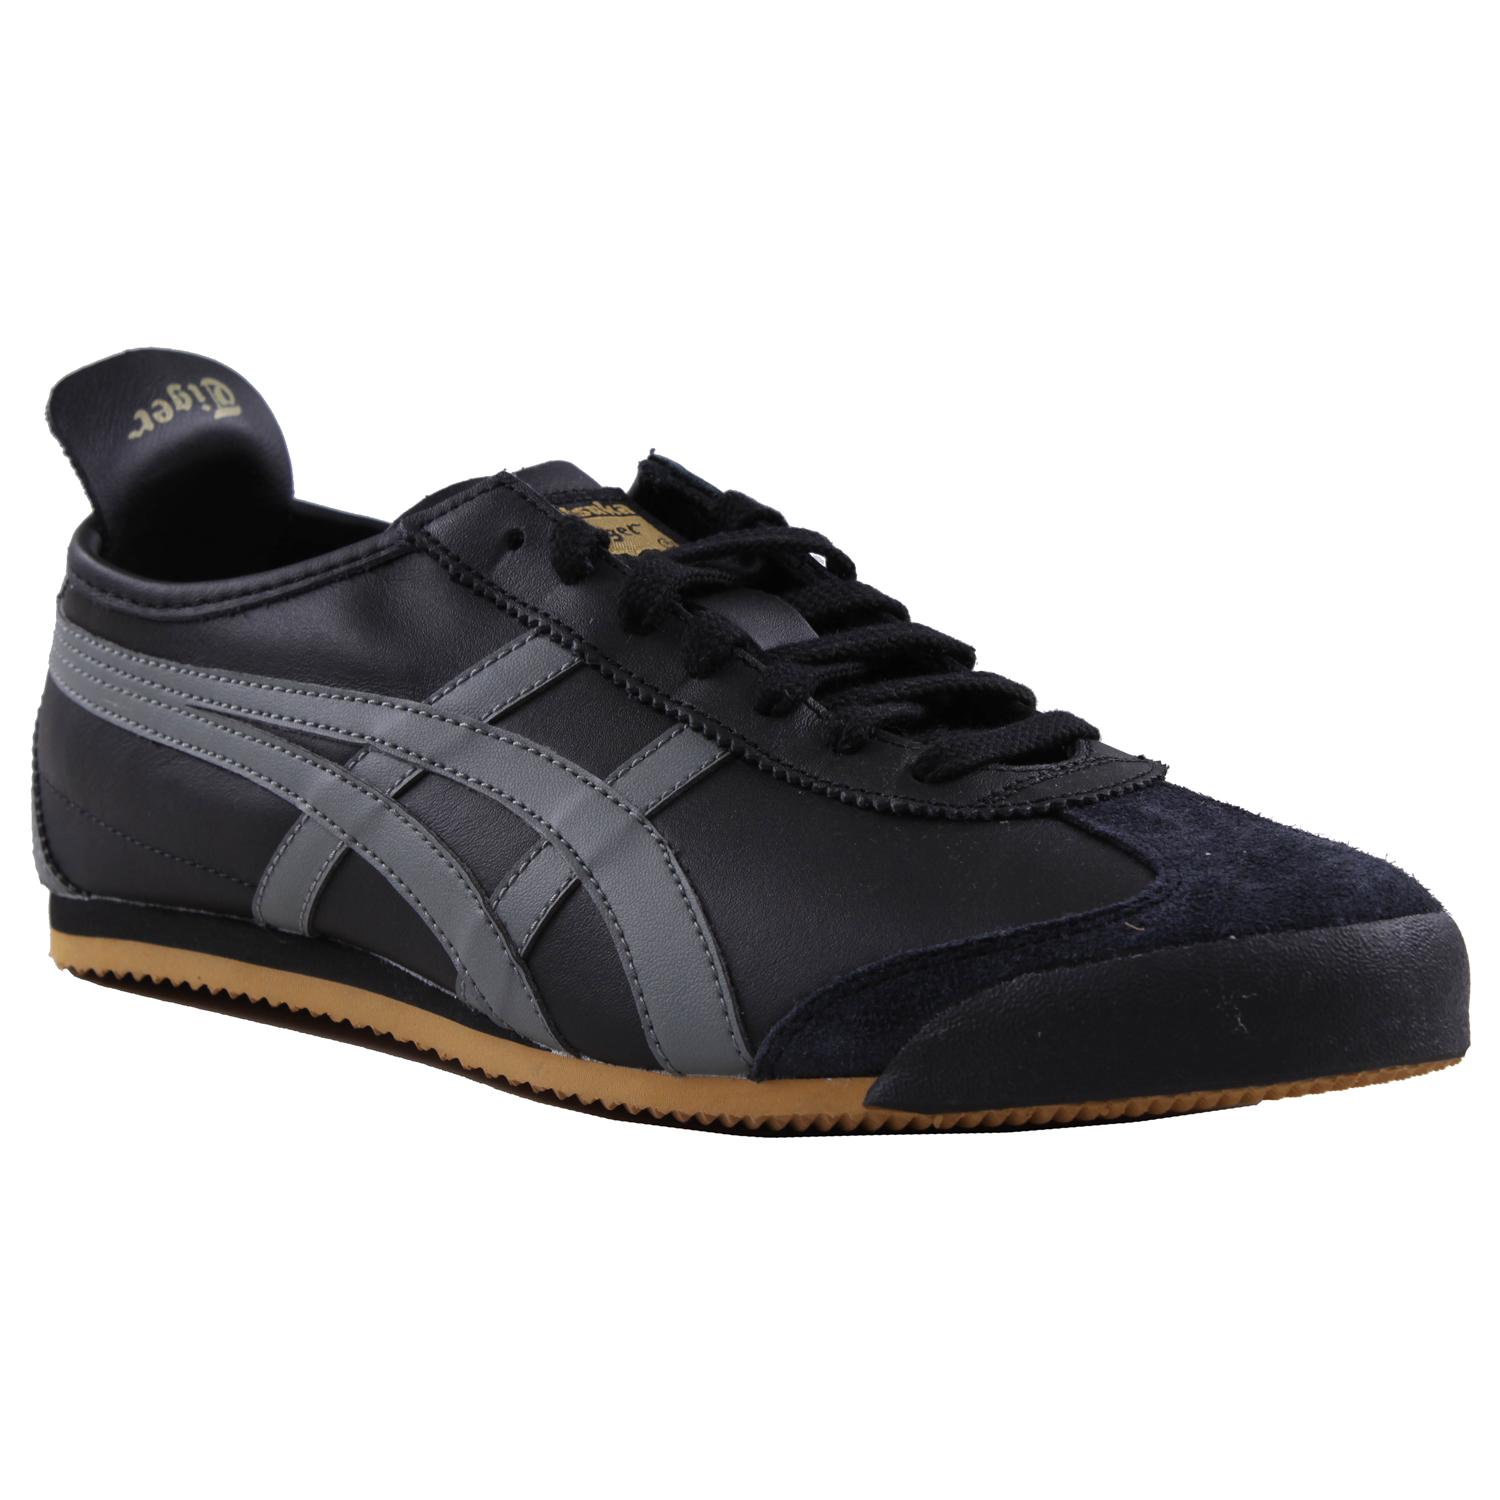 onitsuka tiger mexico 66 shoes evo outlet. Black Bedroom Furniture Sets. Home Design Ideas